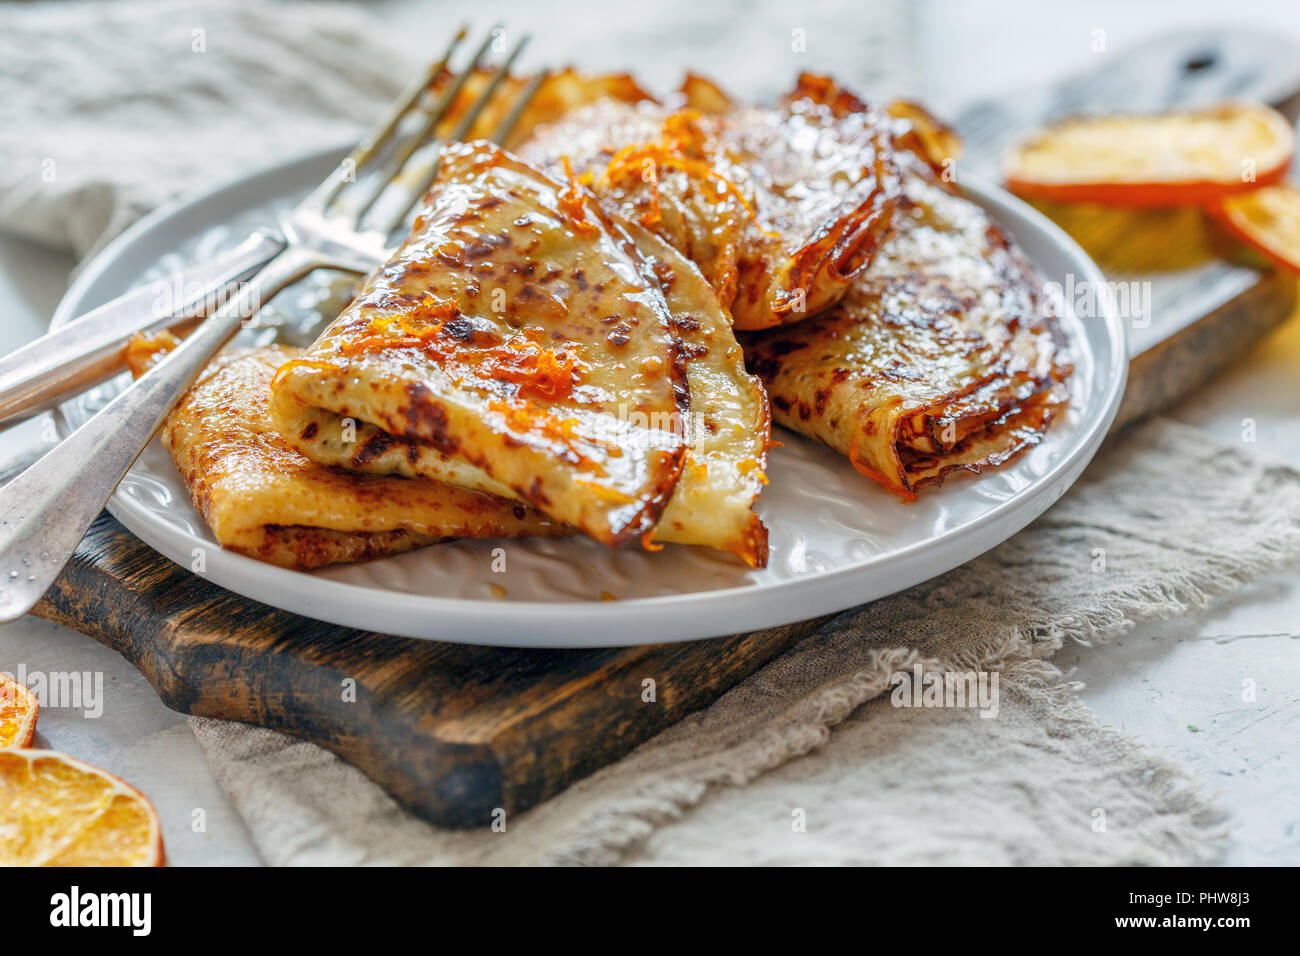 Thin crepes with orange sauce. - Stock Image